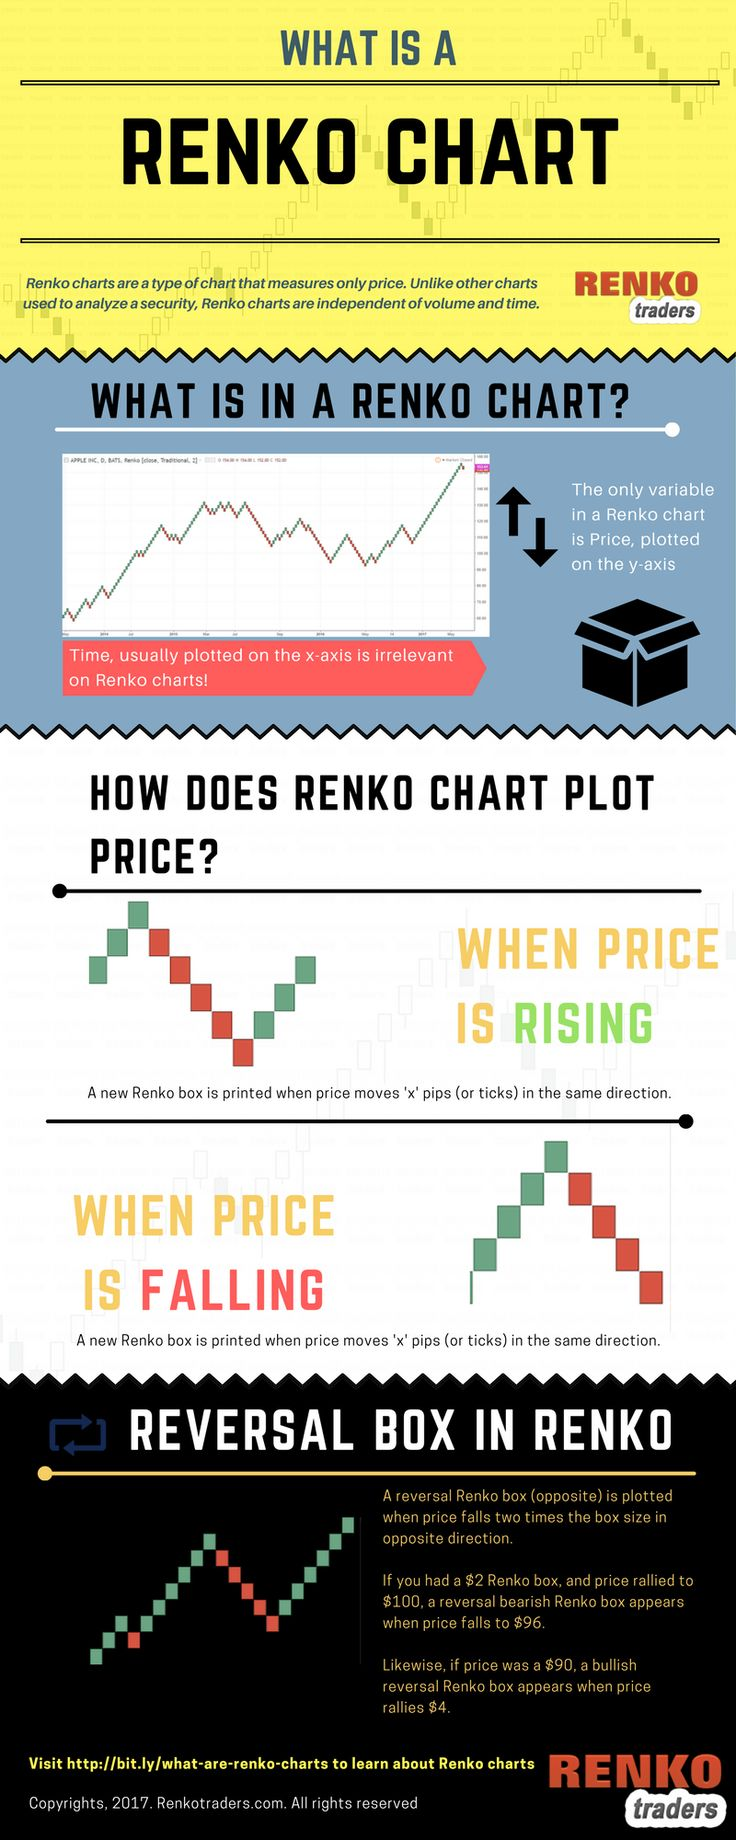 8 Best Etc Images On Pinterest Infographic Interesting Facts And Sterling Lowvoltage Circuit Tester Pricefallscom What Is A Renko Chart Infographix Directory